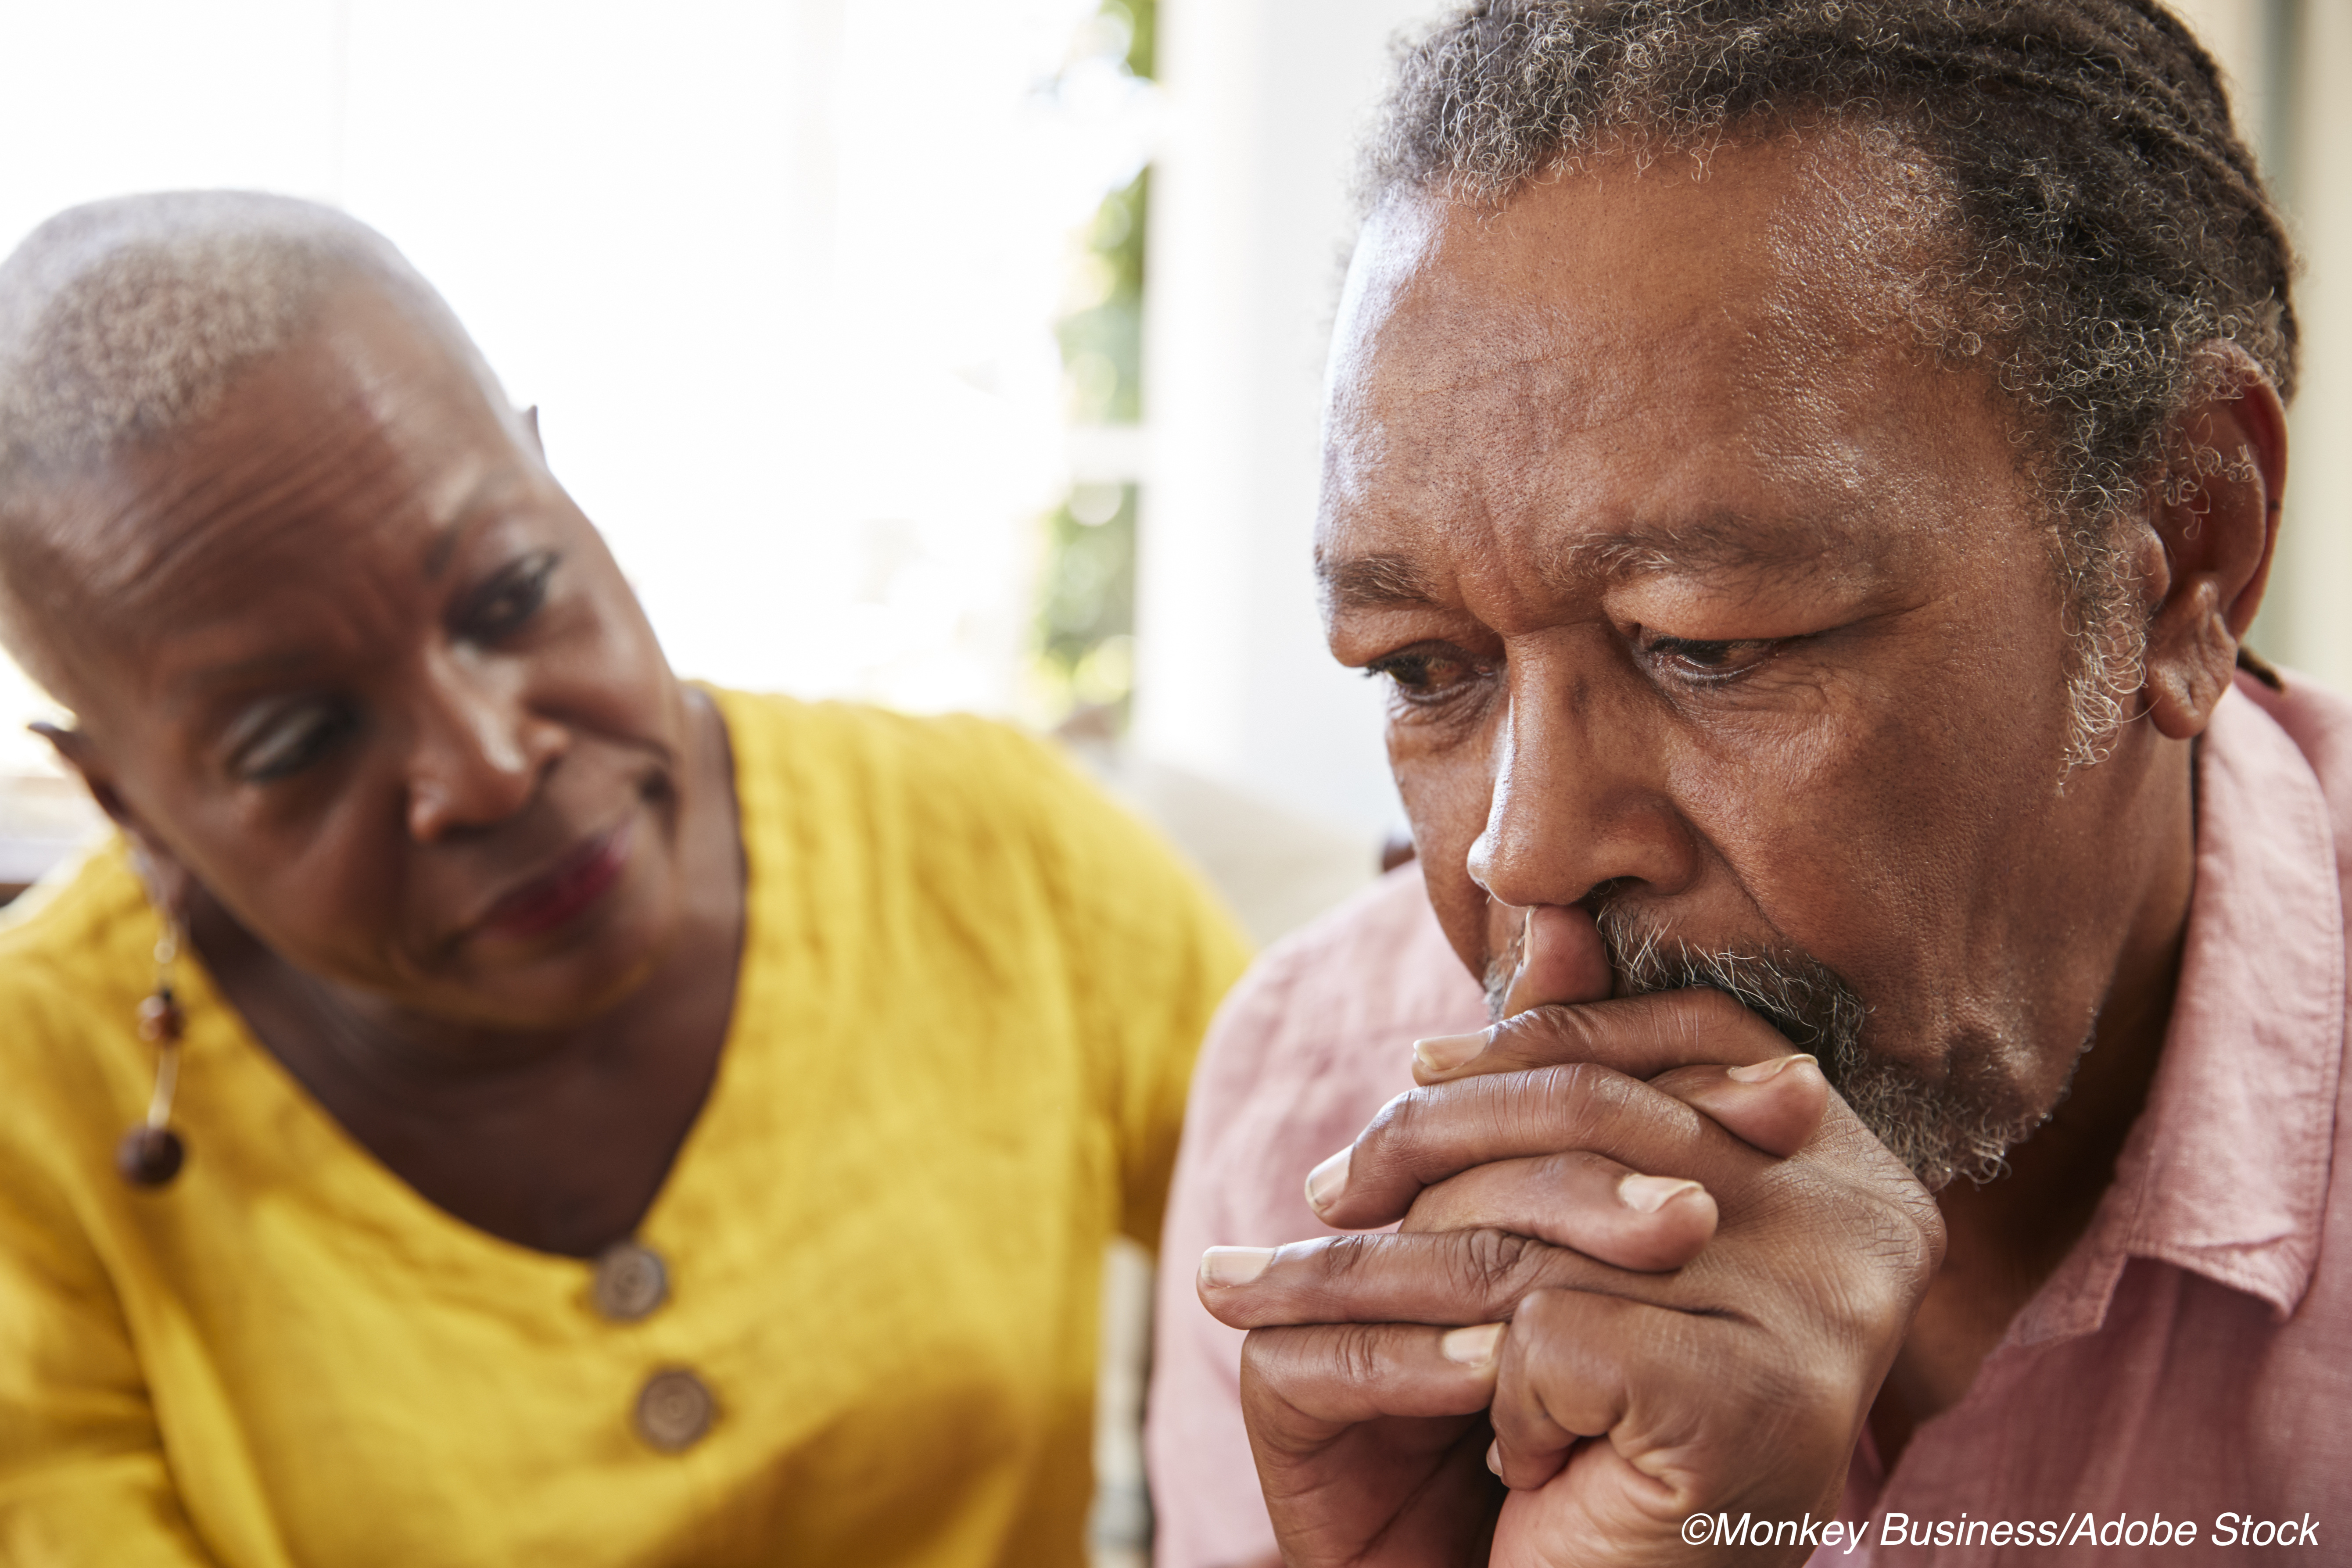 Dementia Evaluations, Diagnoses Vary by Race, Ethnicity